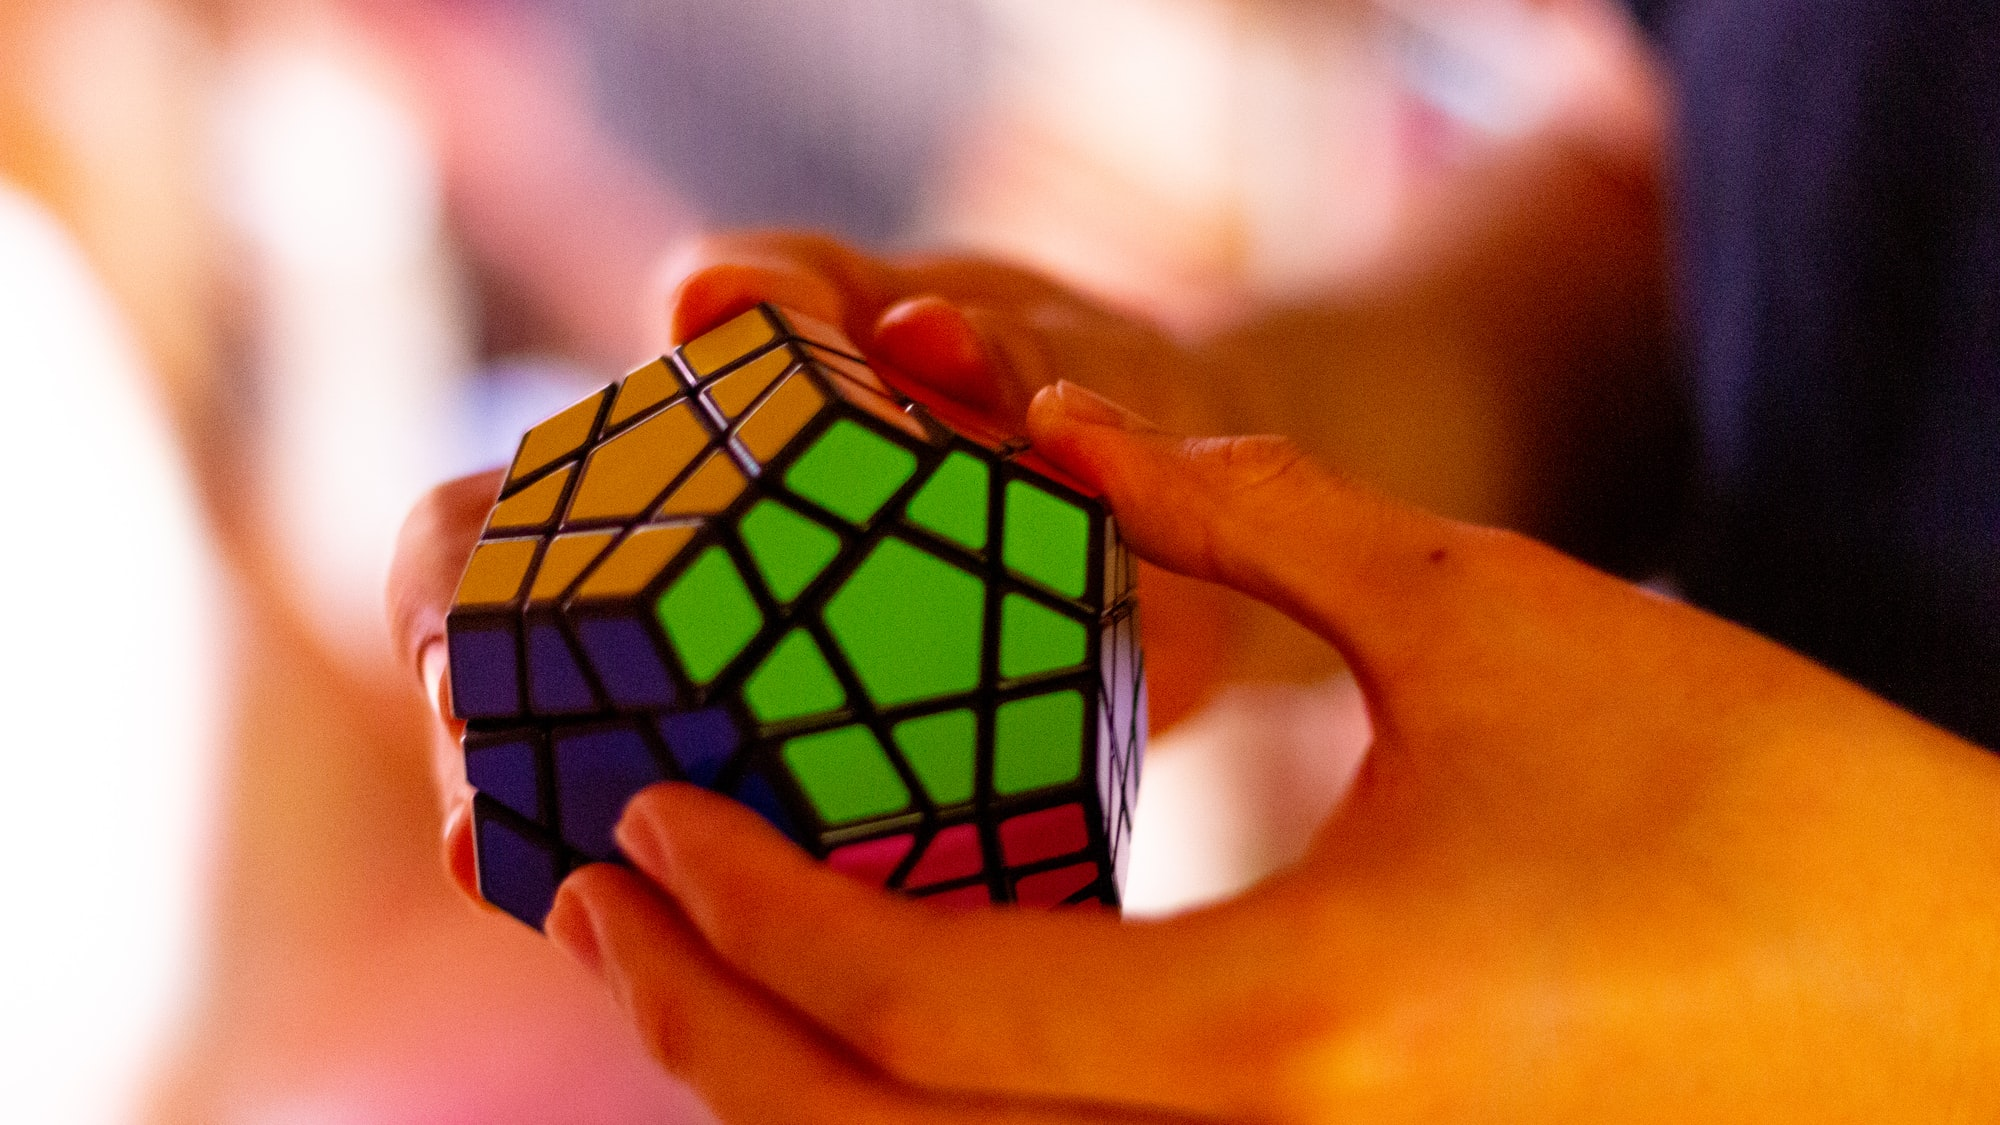 A megaminx (a variation of a Rubik's cube) solved.